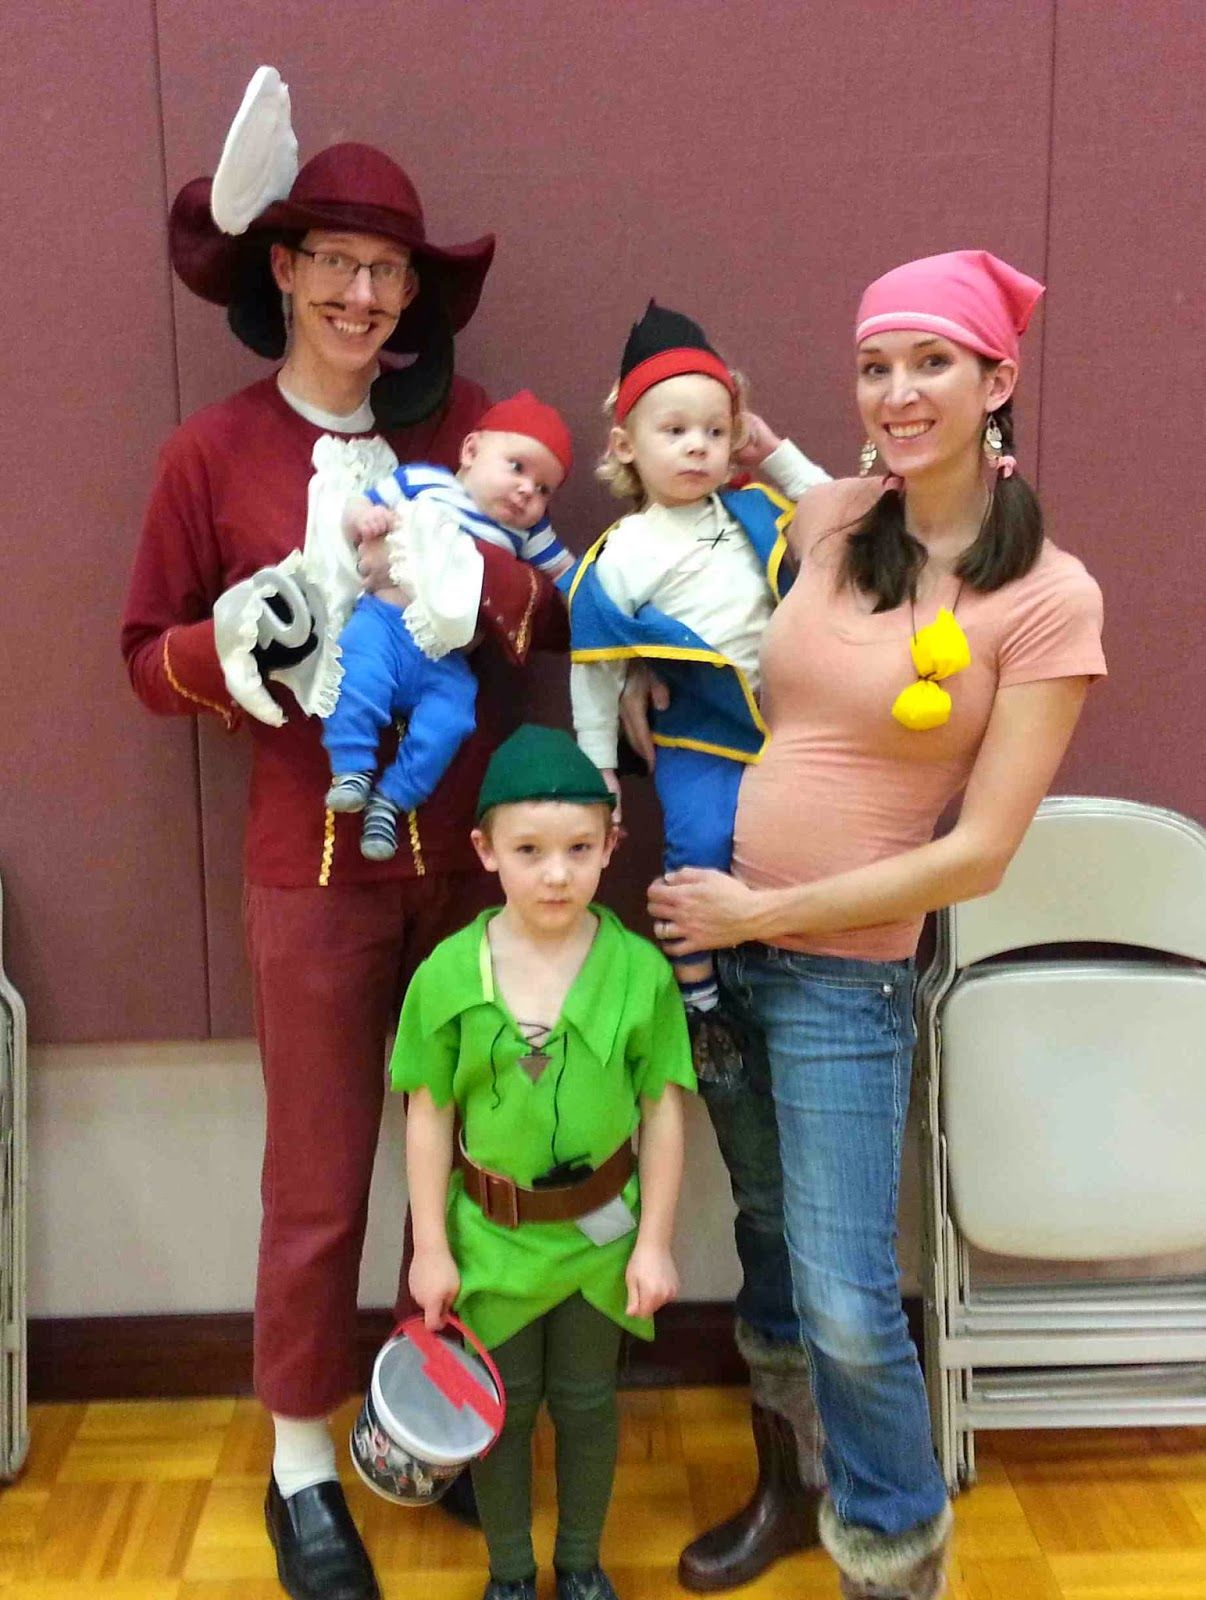 mademe. shared with you.: jake and the neverland pirate costumes